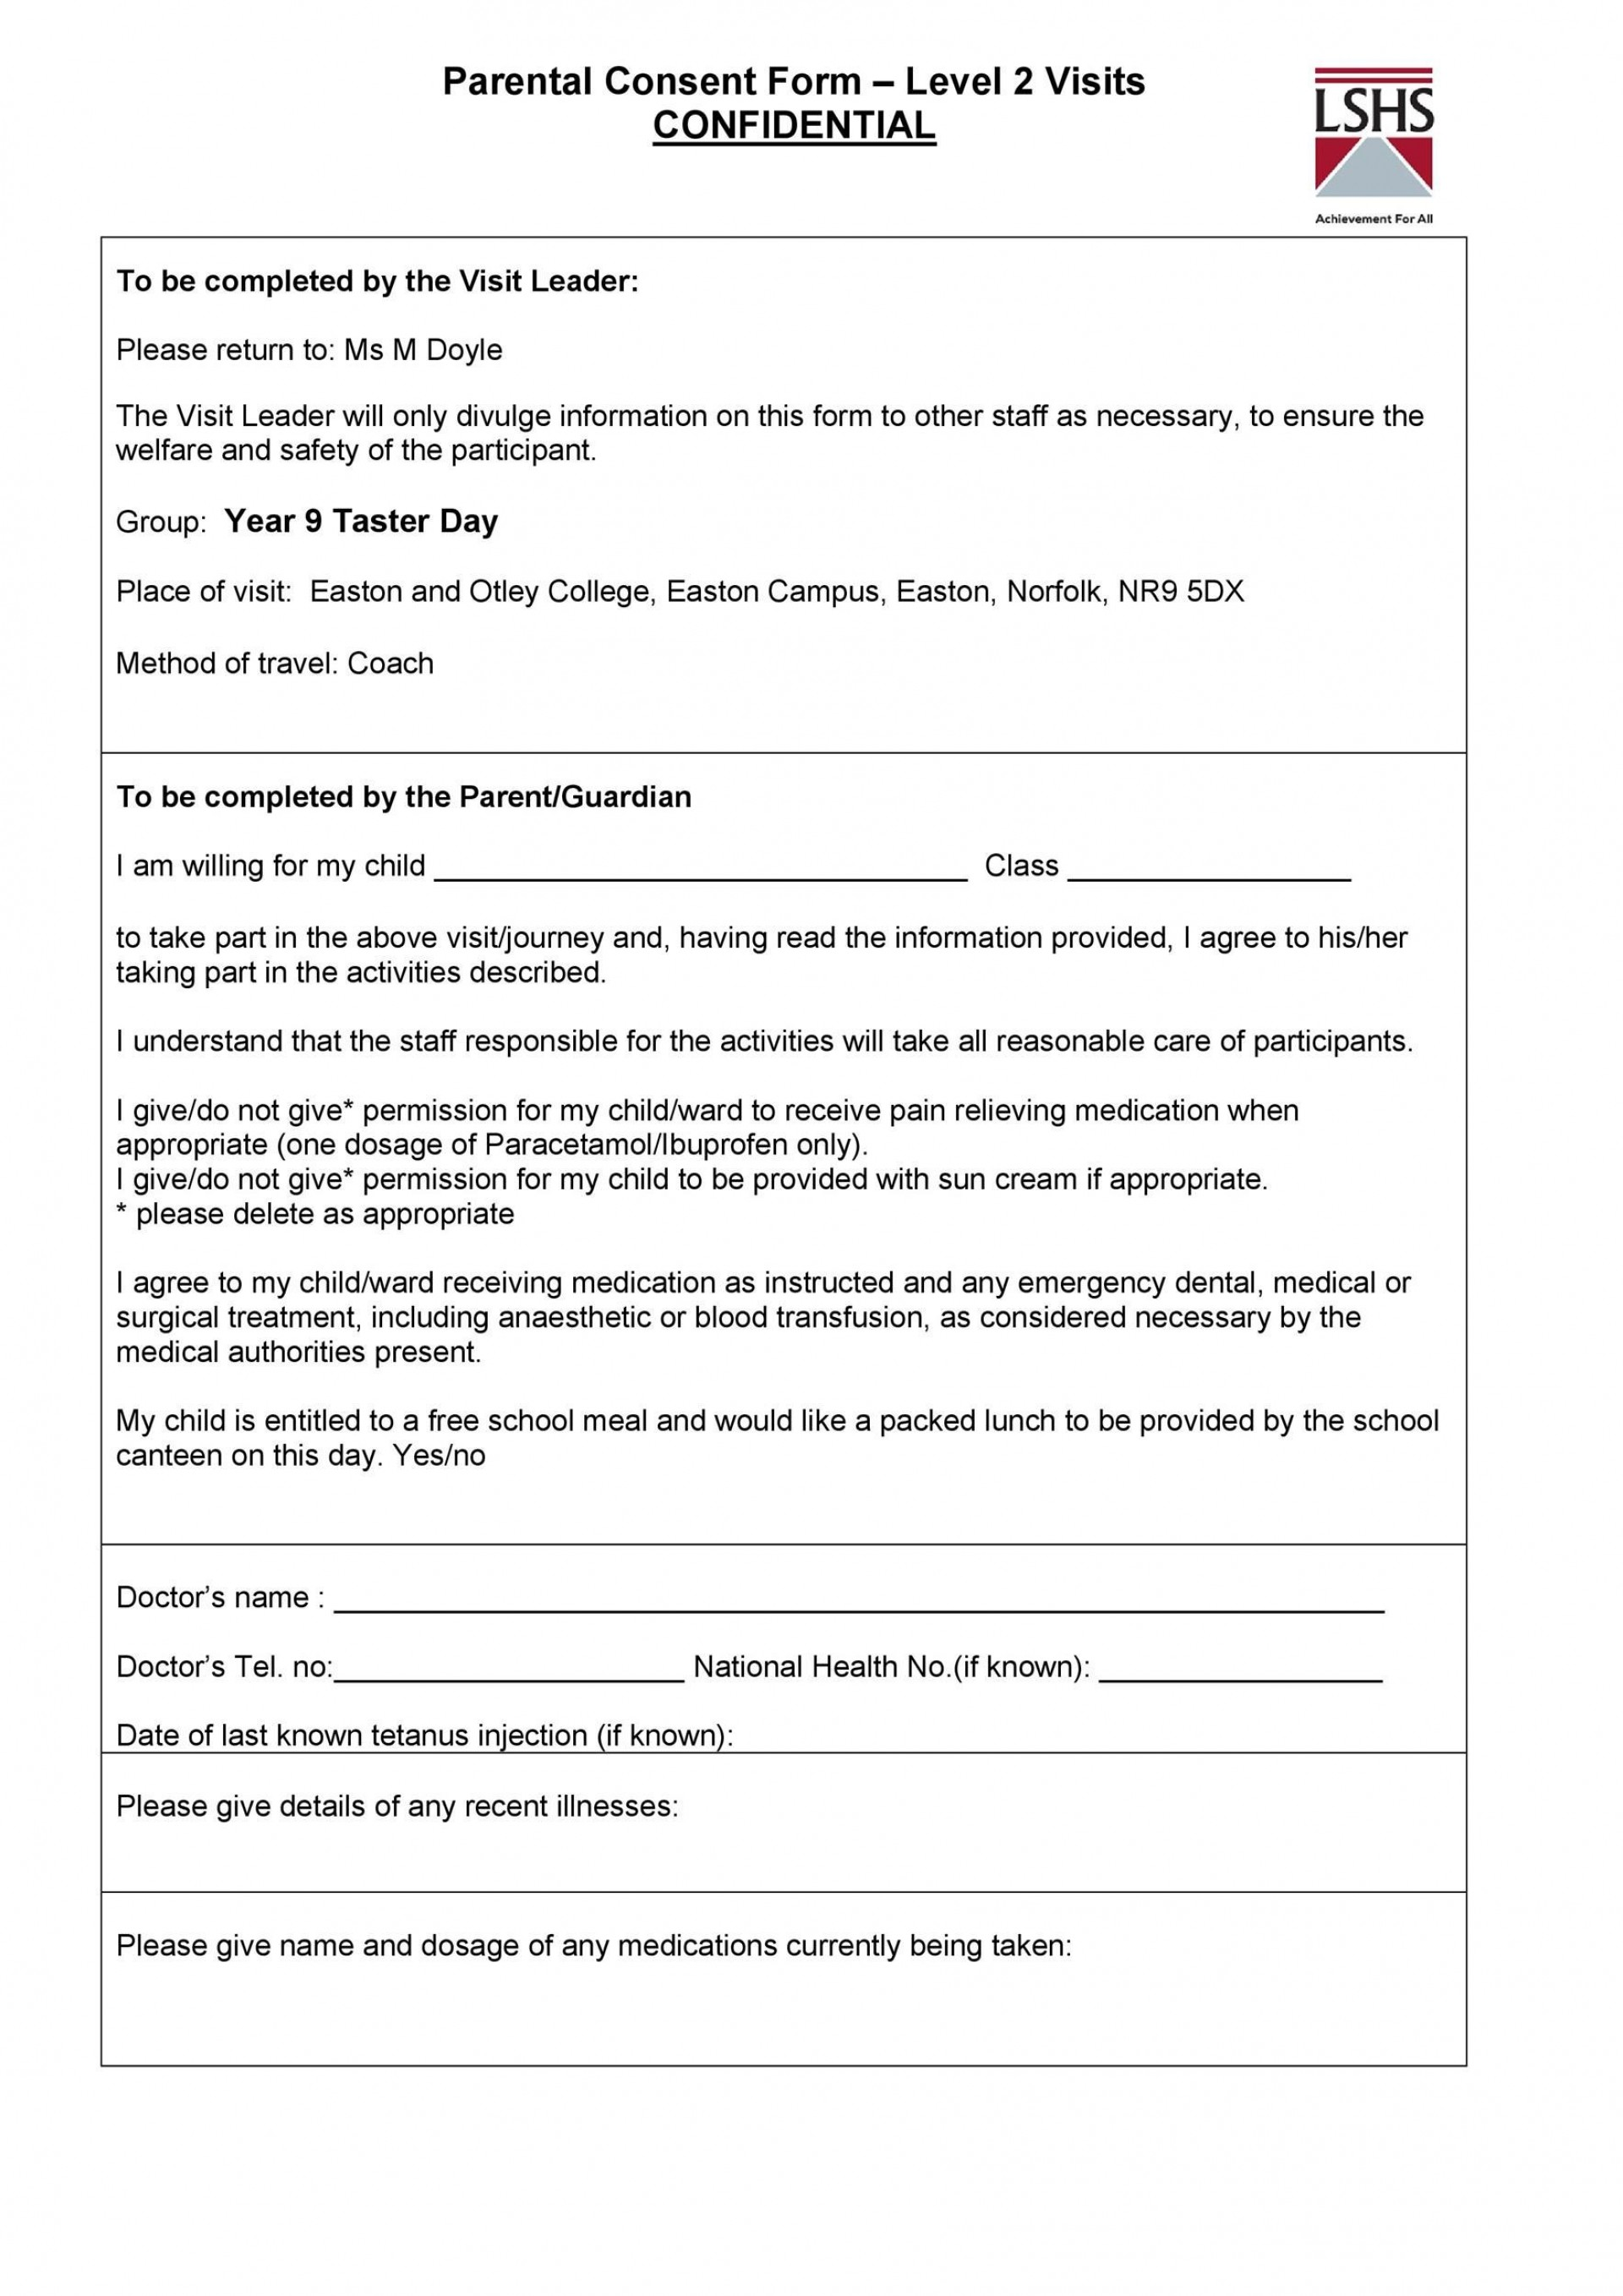 009 Incredible Free Child Medical Consent Form Template Design  Pdf1920